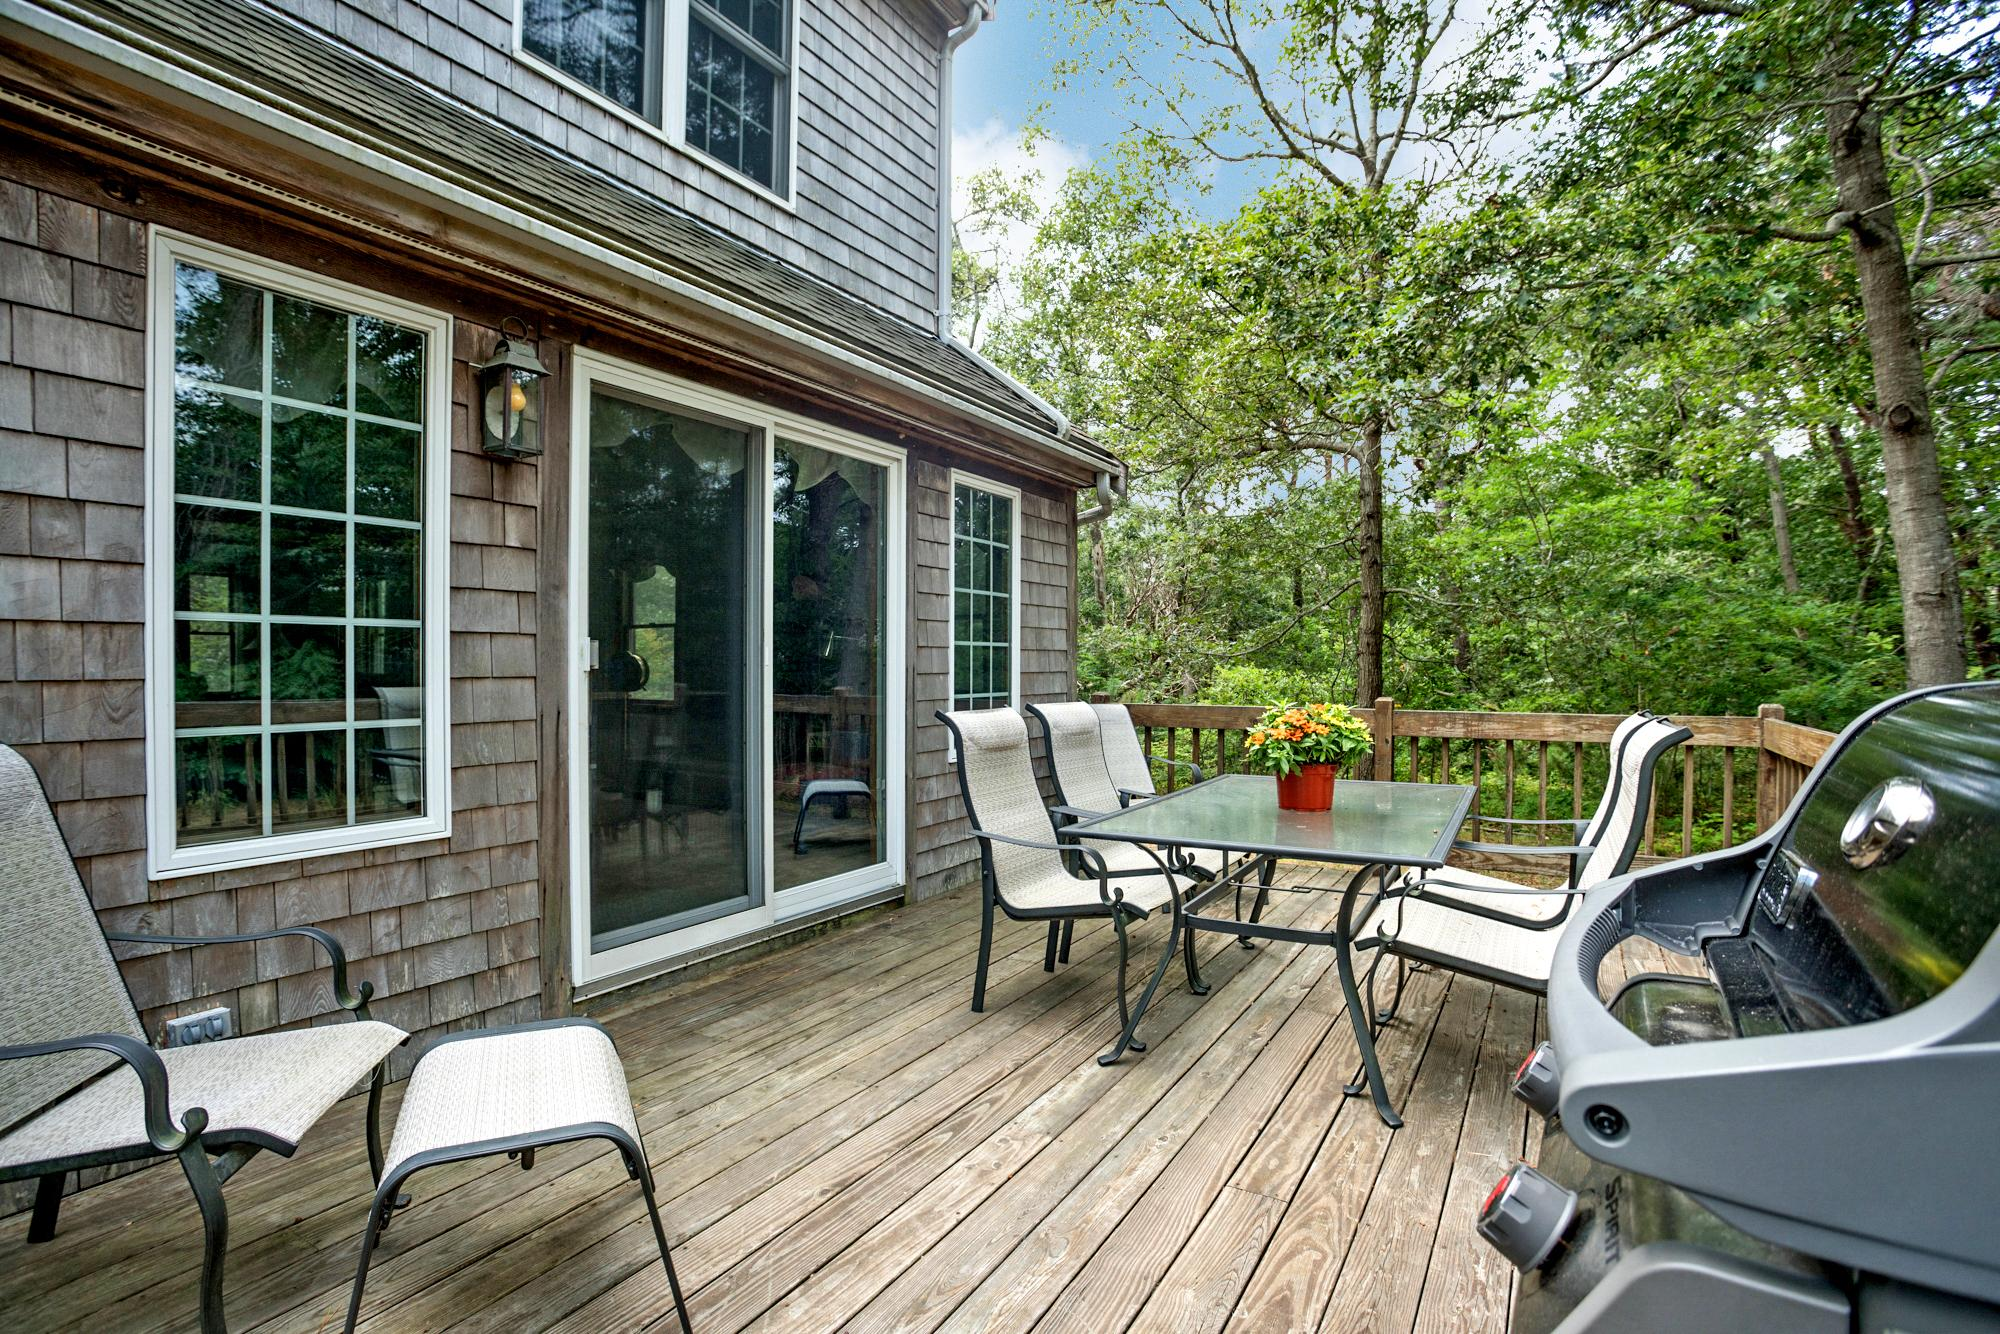 A large deck features alfresco dining and a grill.